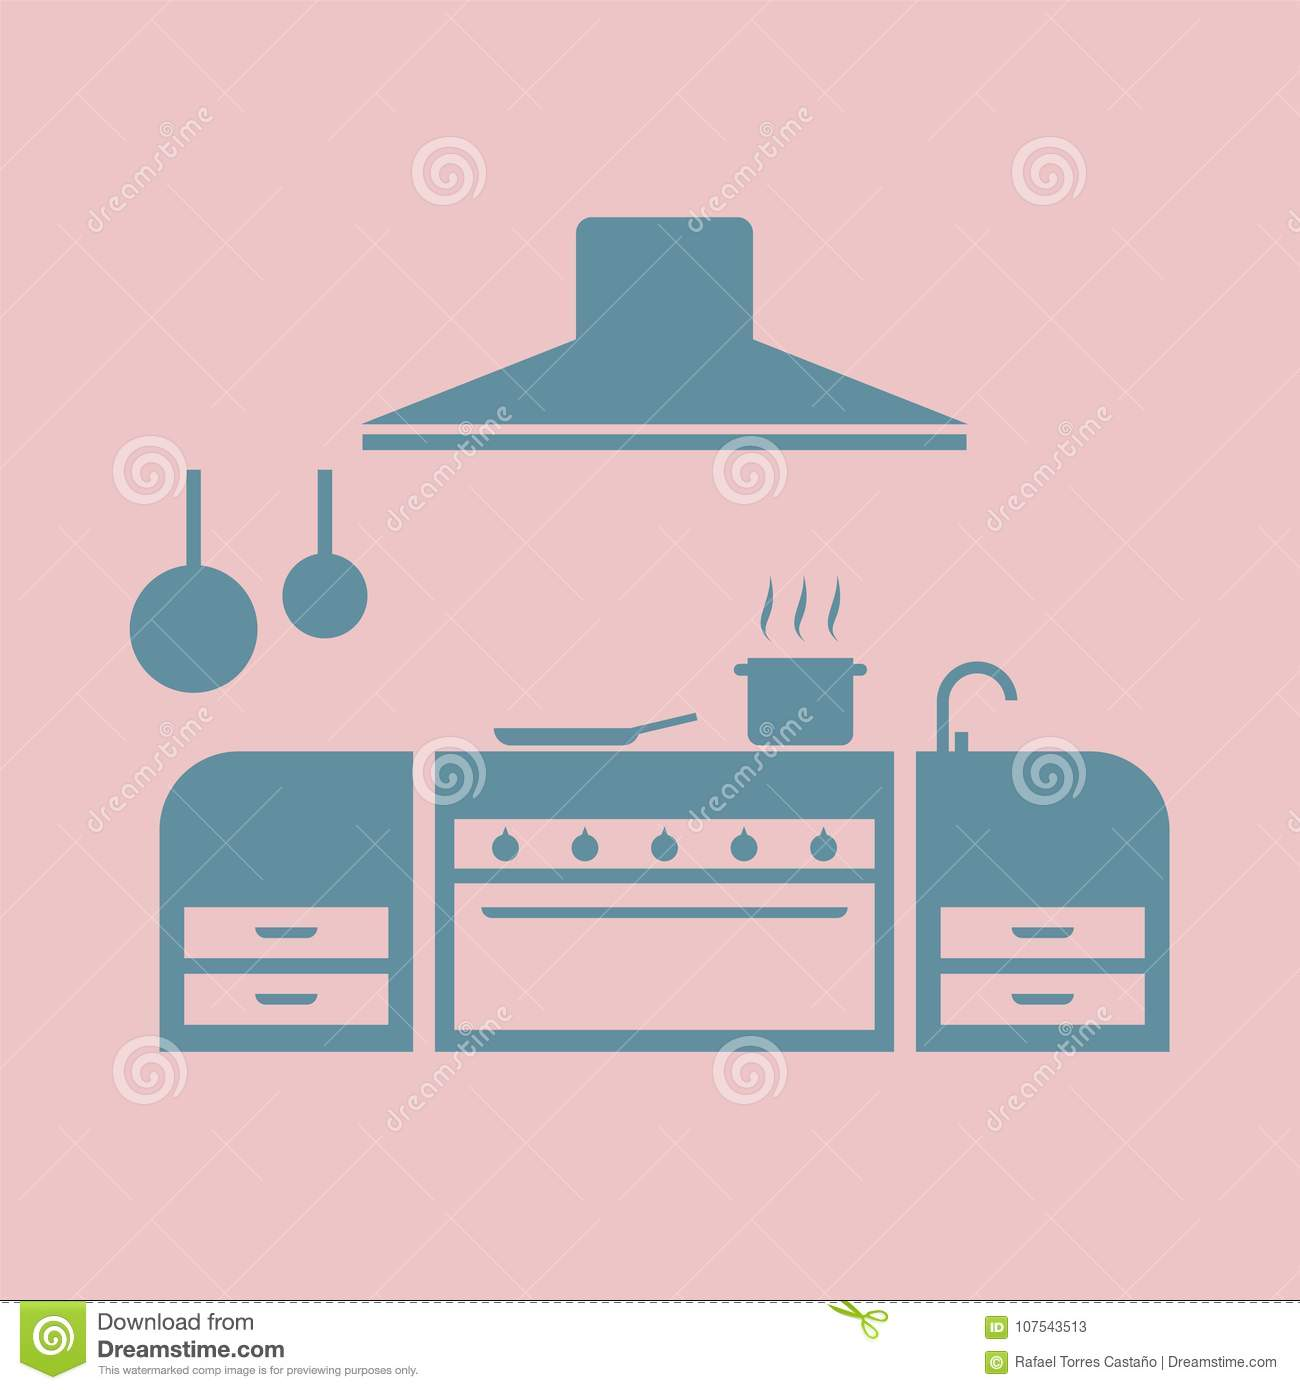 Kitchen icon stock vector. Illustration of house, drawing - 107543513